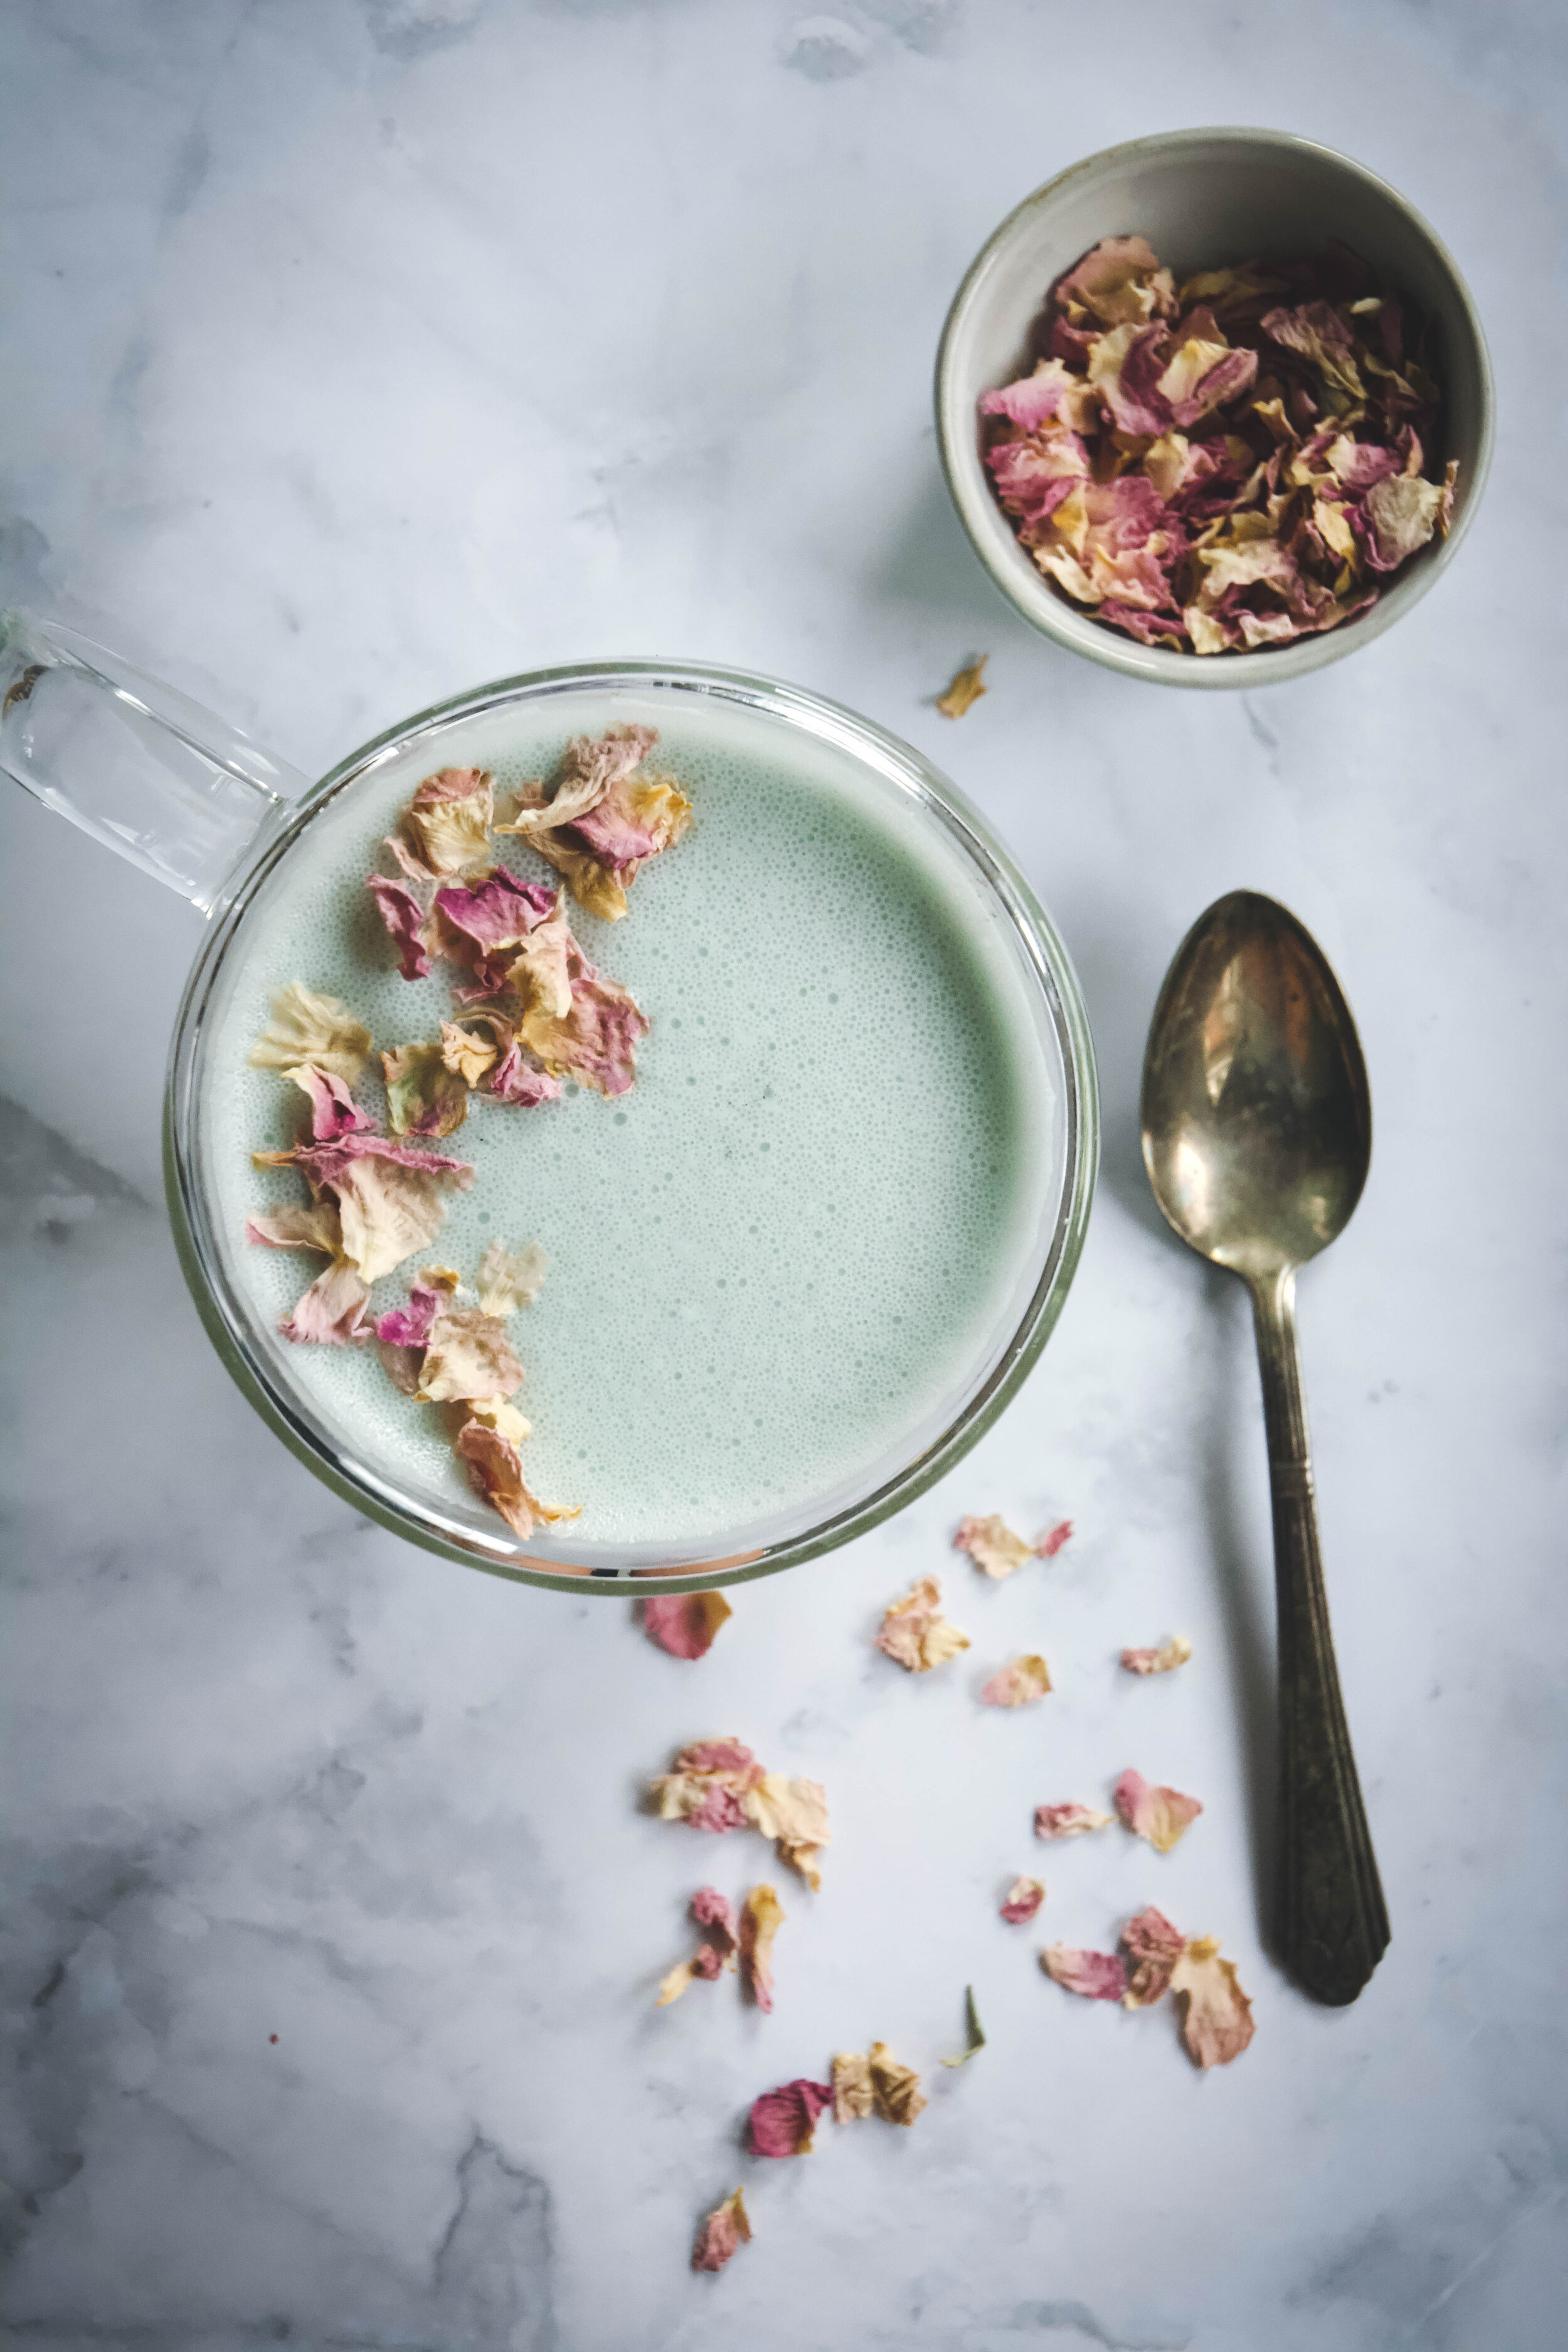 Cardamom moon milk is the ideal drink right before sleep. Cardamom, ashwaganda, gorgeous butterfly pea flower powder, coconut oil and honey make this soothing drink my favorite go to for great sleep. #moonmilk #cardamom #ashwaganda #calmeats #vegan #paleo #whole30 #hormonebalance #sleepdrink #ayurvedicmilk #cardamommoonmilk